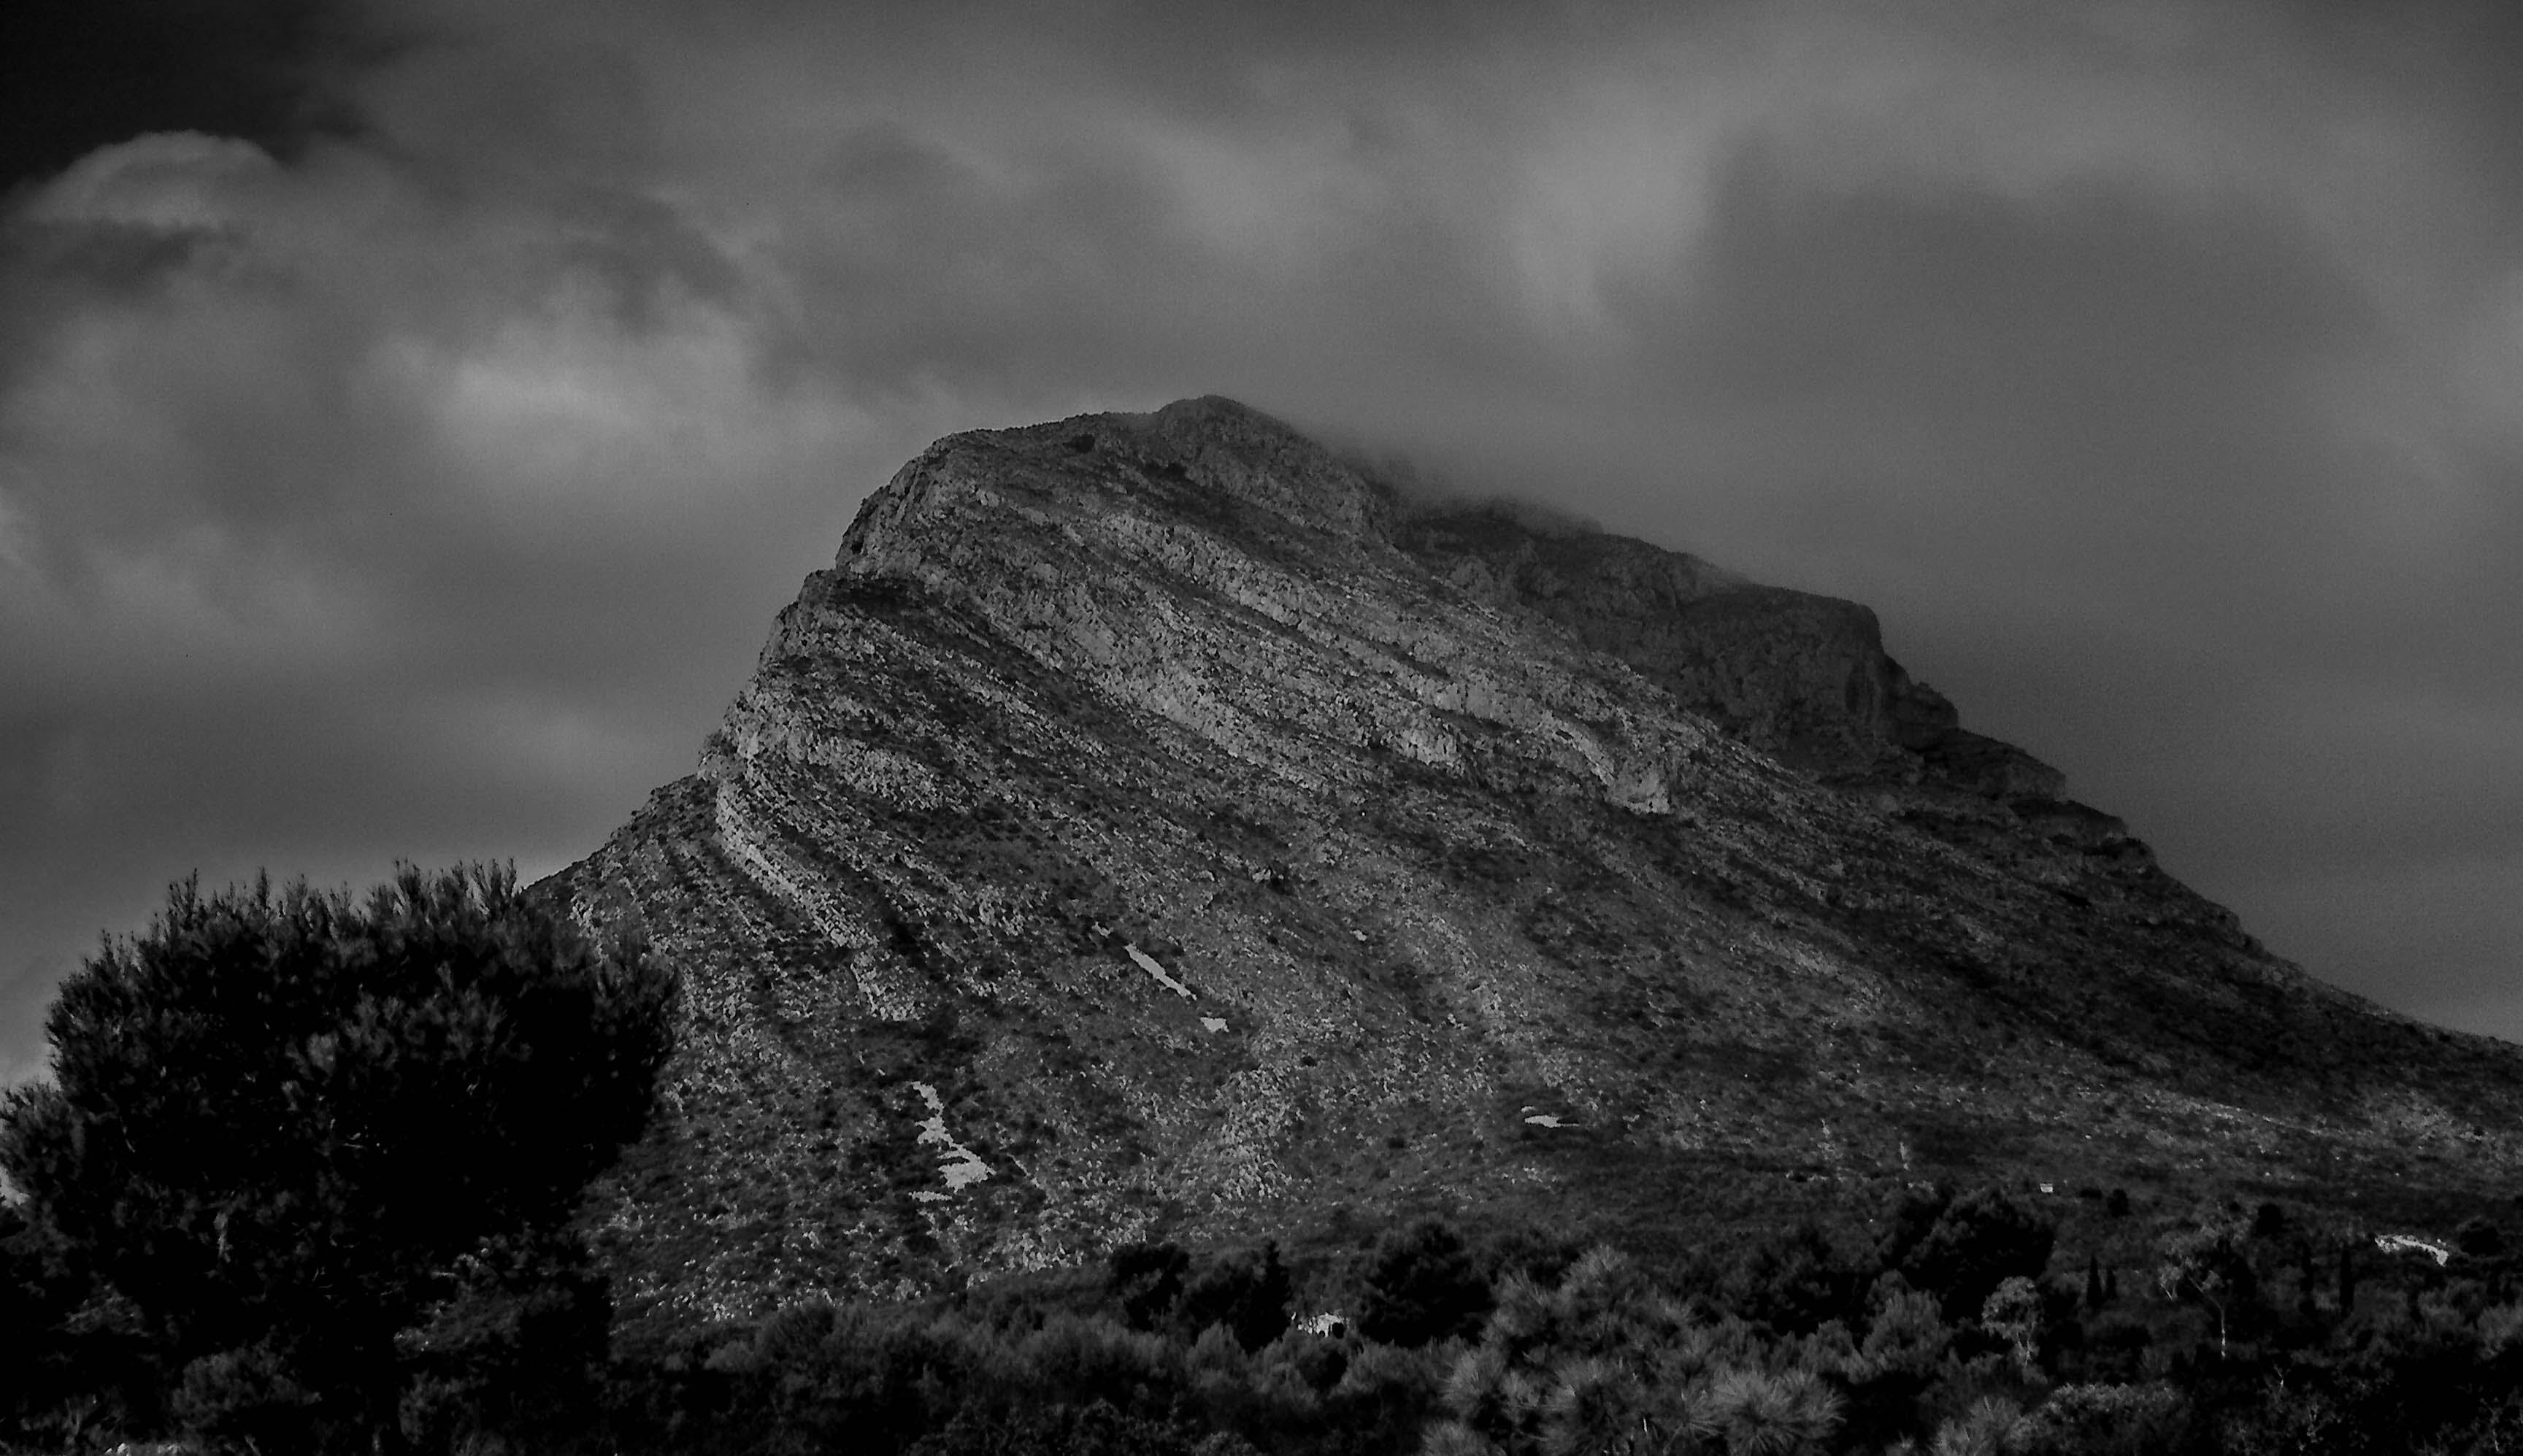 Grayscale Photo of a Mountain